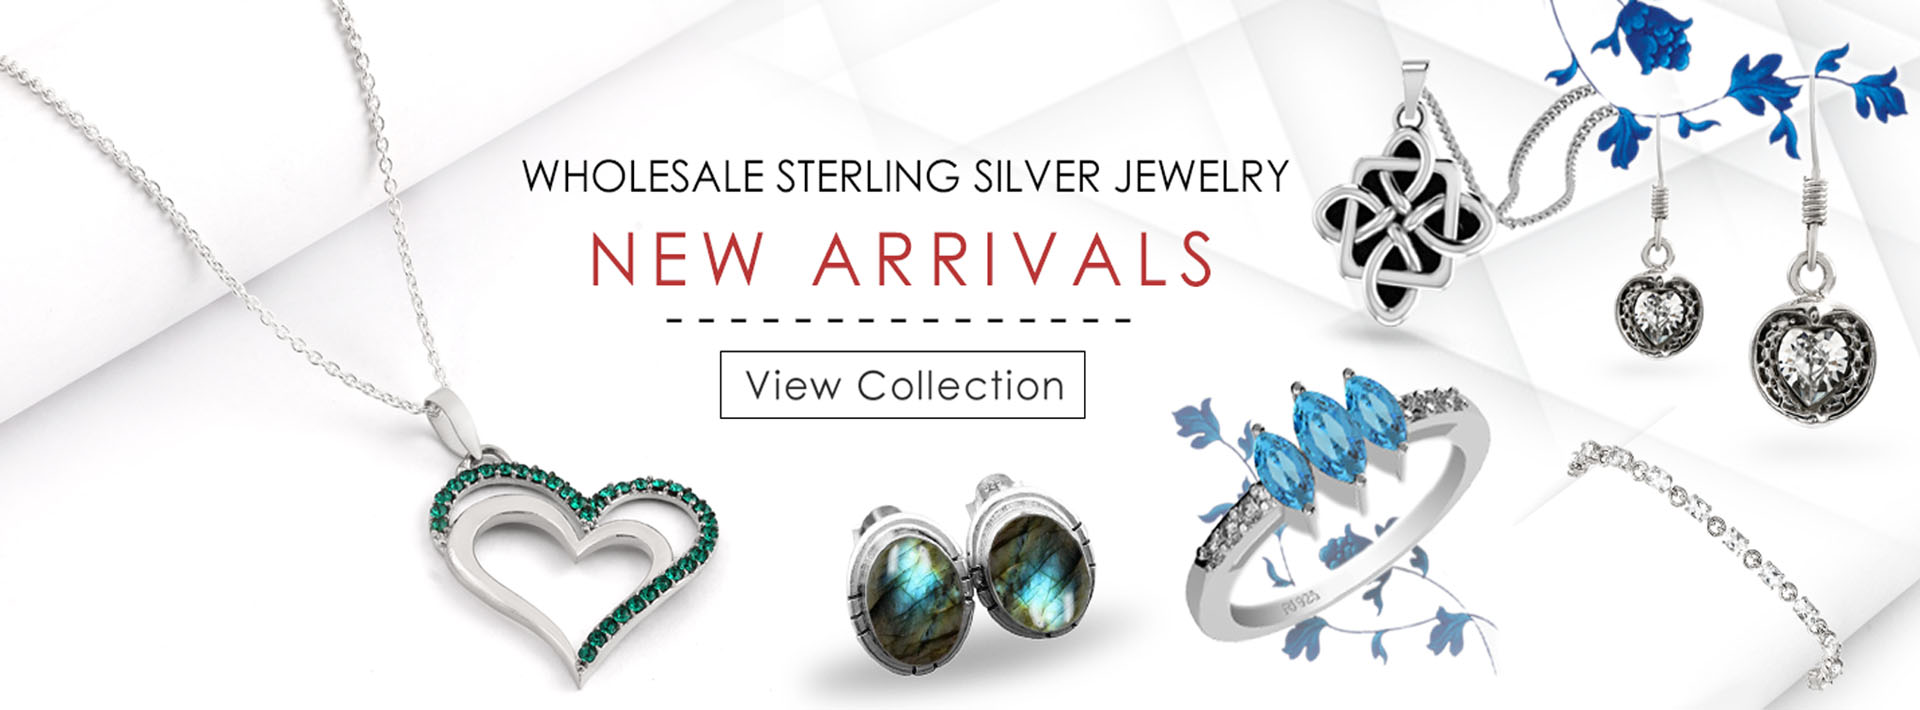 New Arrivals Collection